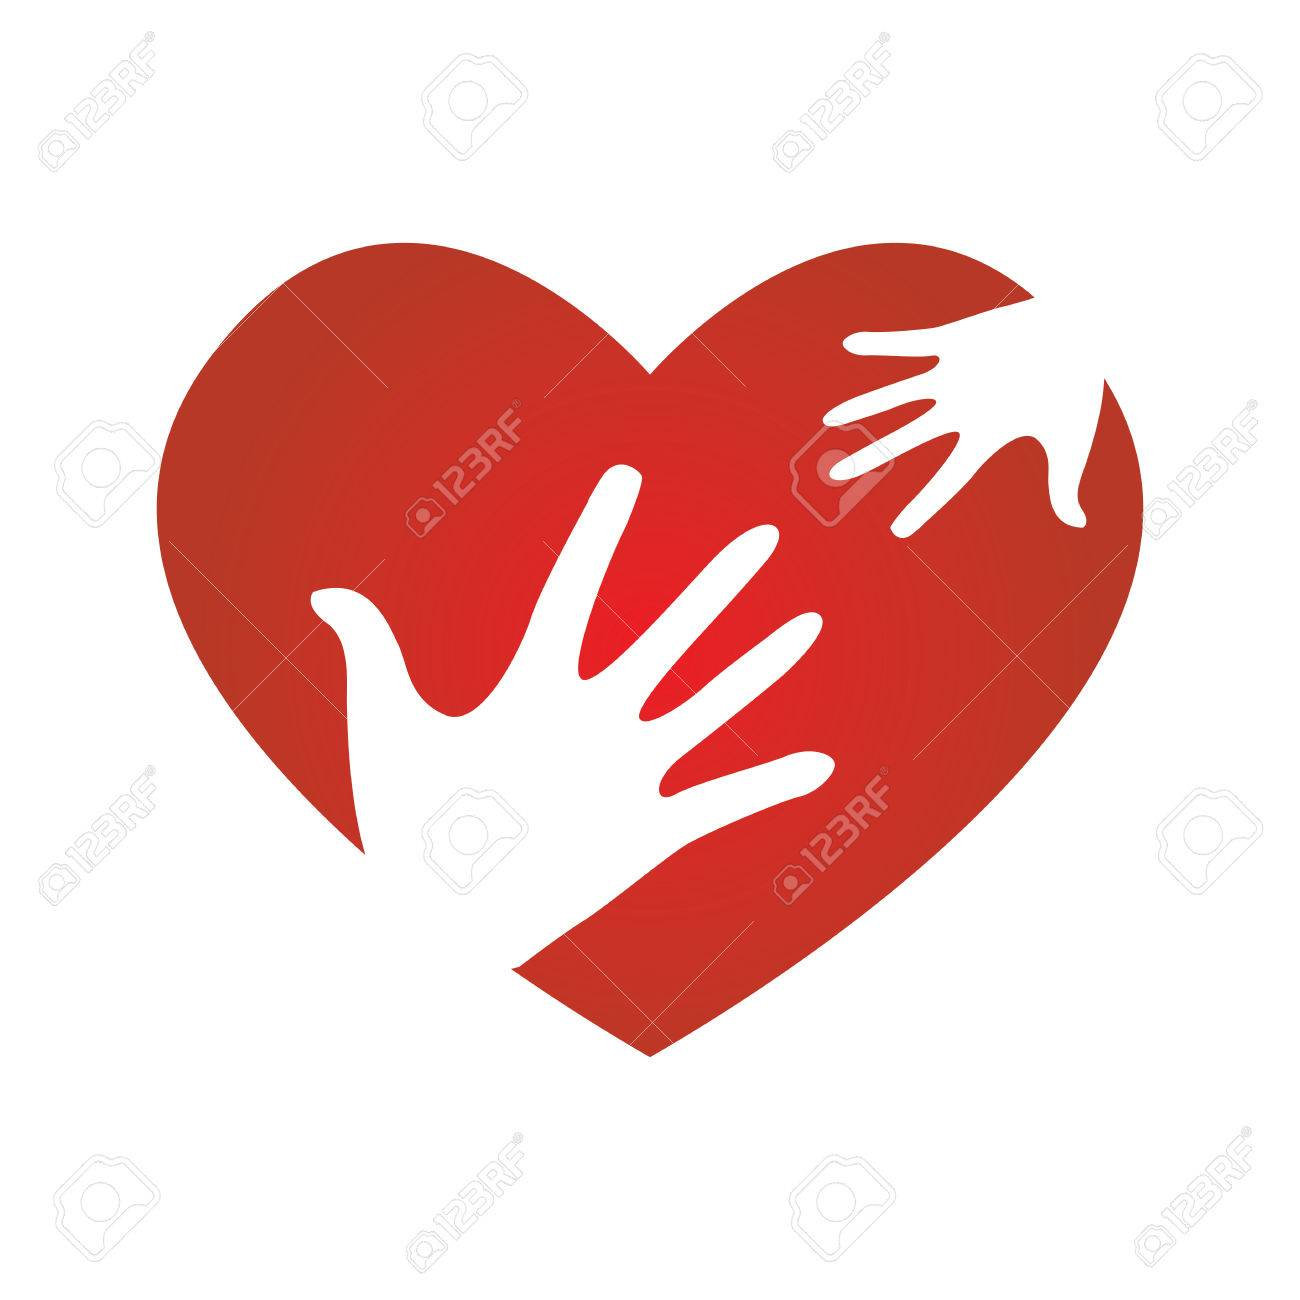 Heart with child and adult symbols peace donation charity icon heart with child and adult symbols peace donation charity icon stock vector 54854635 biocorpaavc